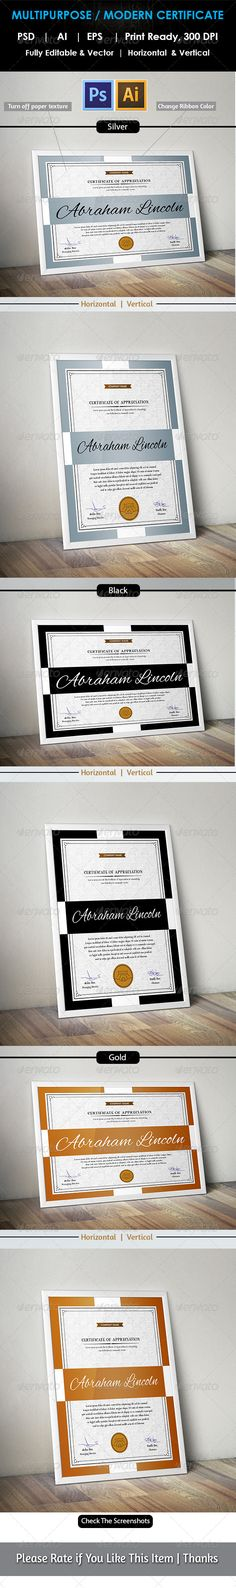 Multipurpose Certificates III Certificate, Psd templates and - business certificate templates